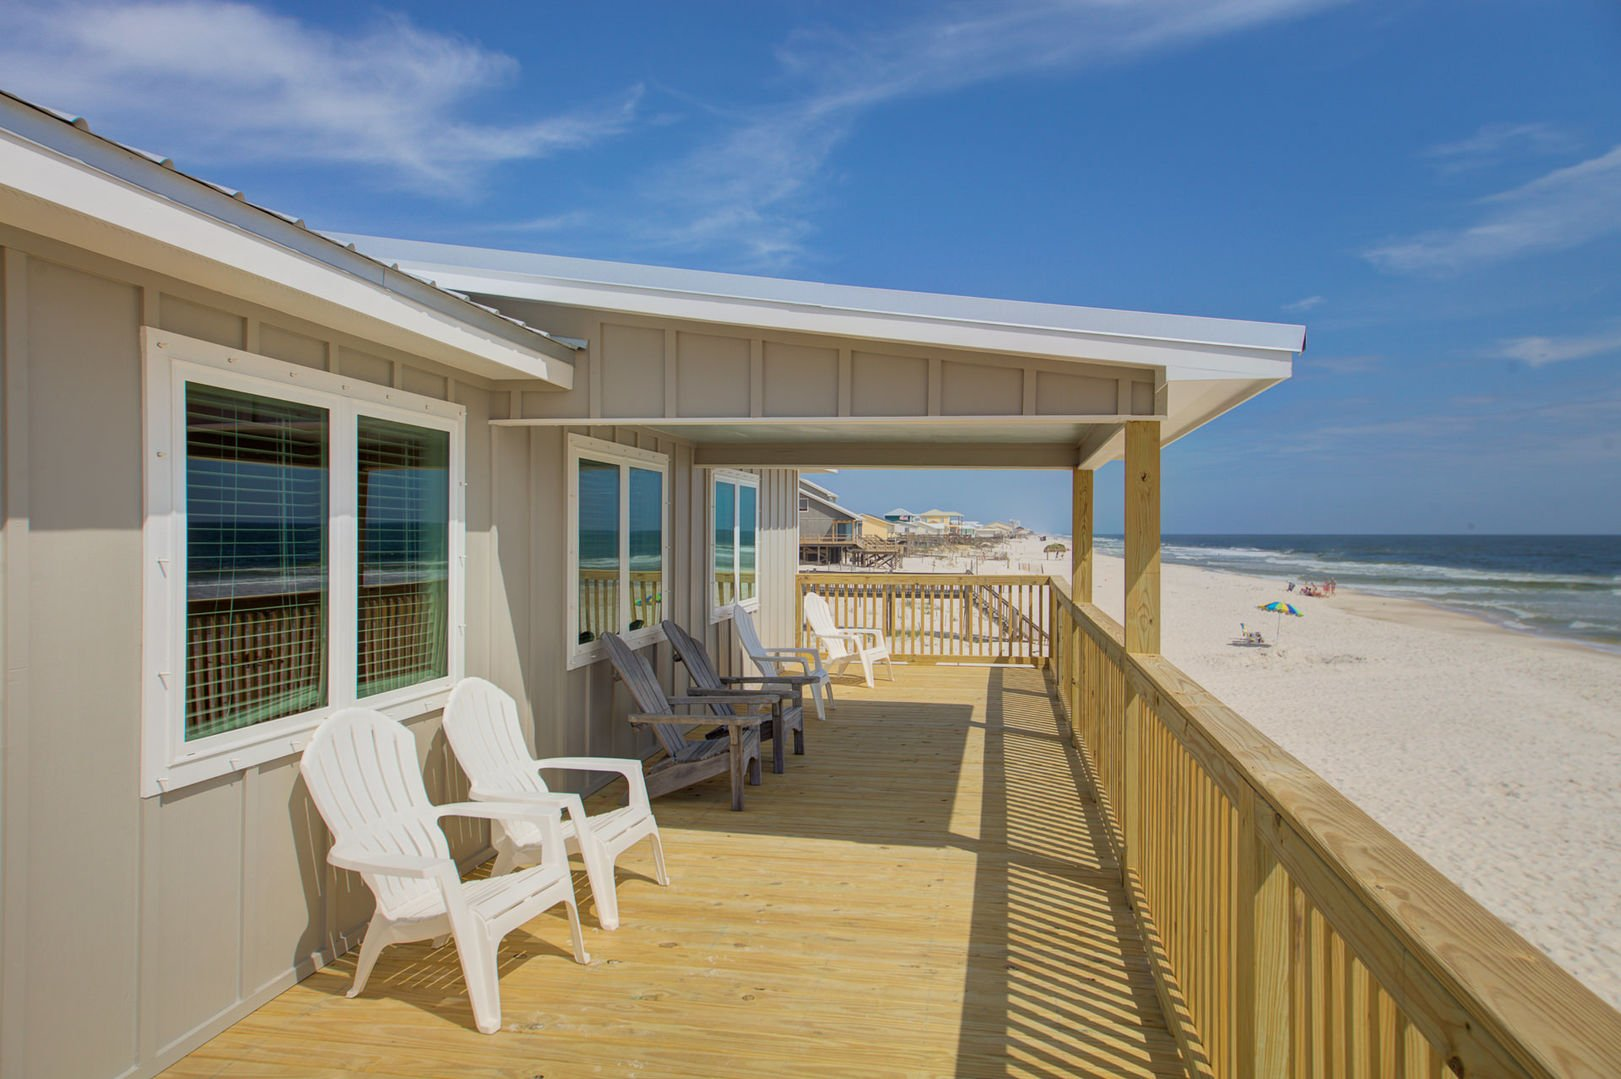 There is plenty of room to relax on the patio of this beachfront Gulf Shores rental